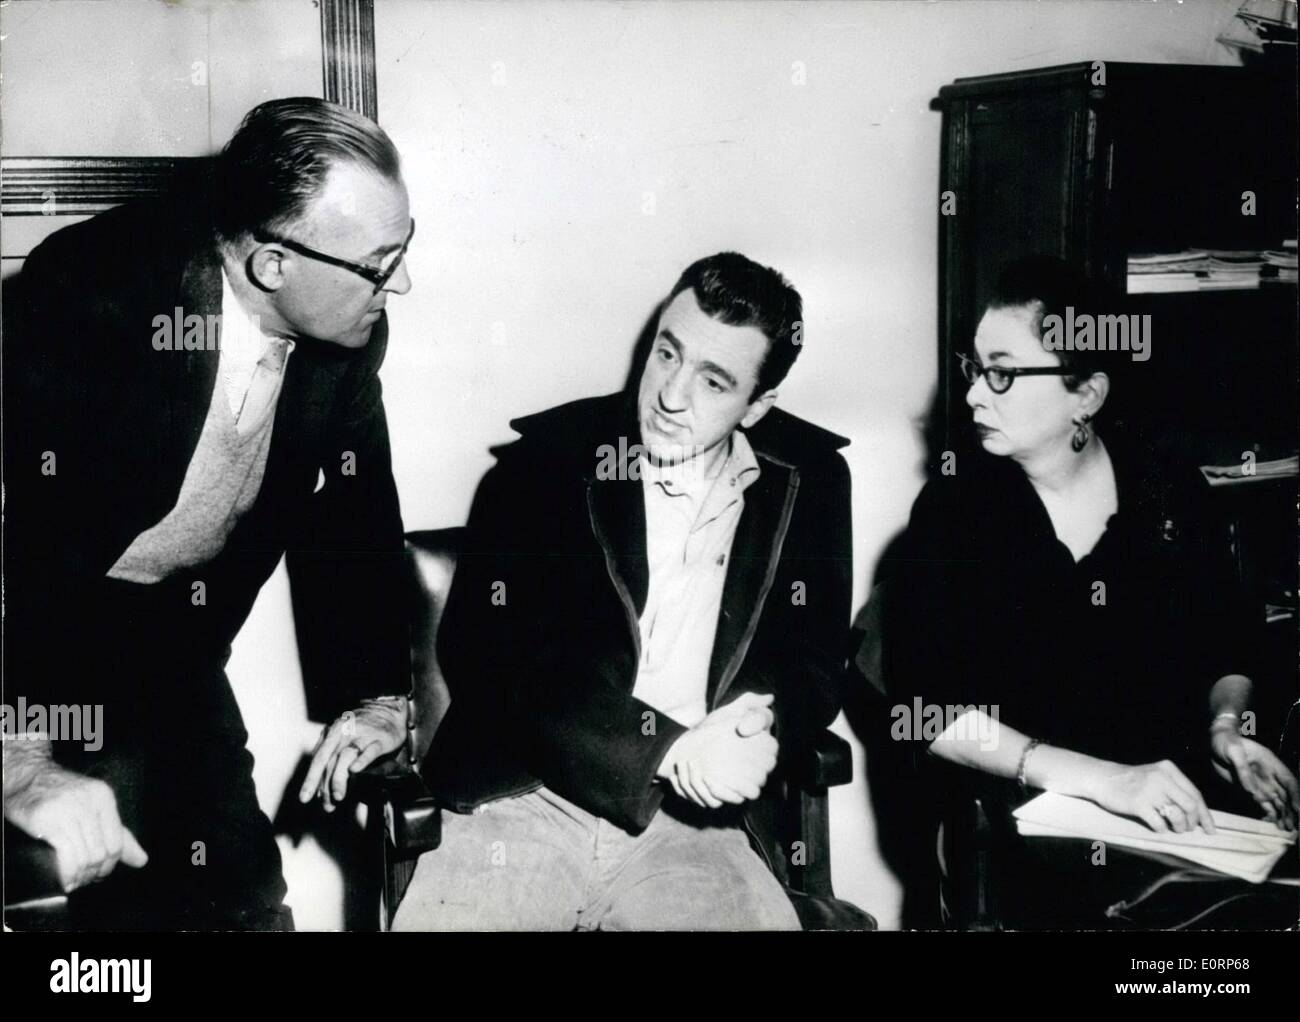 Apr. 04, 1960 - Chessman distances himself from his Solicitor: Caryl Chessman (Caryl Chessman) who is now sentenced to die on May 2nd, has asked his solicitor G. Davis (Davis) to withdraw from managing his affairs. Chessman accuses him to have produced in the public a ''one-man show'' and that he got him into an impossible situation. Chessman also told his solicitor that he is ready to die on May 2nd. Photo Shows (left to right): Solicitor Davis, Chessman and the woman-solicitor Rosalie Asher (Rosalie Asher) - Stock Image